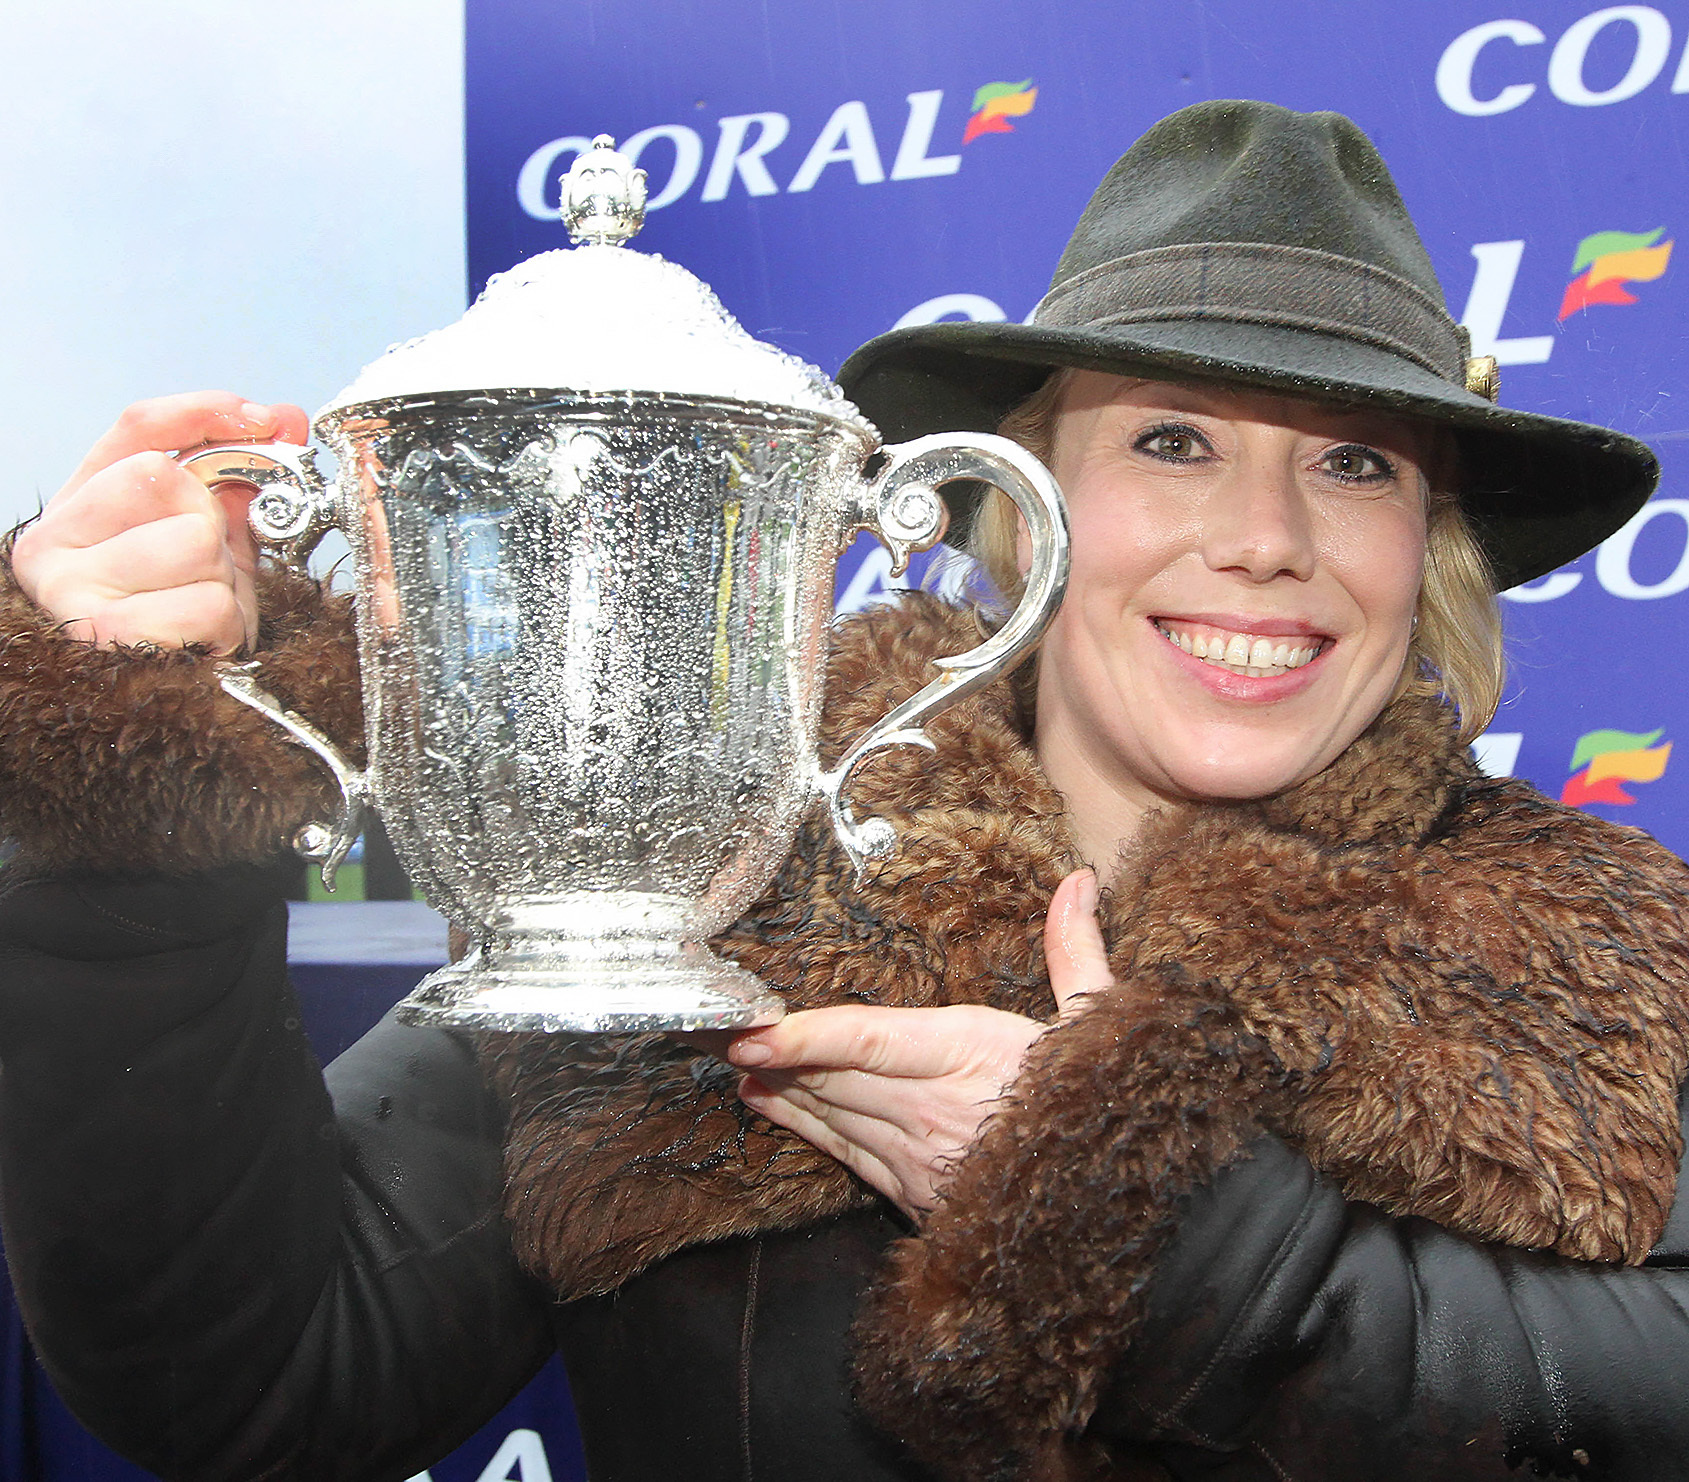 kerry lee2.jpg                    PB001-2016-56 Coral Welsh Grand National 2015 at Chepstow Racecourse held last Saturday January 9th won by Mountainous trained  by Kerry Lee from Presteigne pictured is Kerry Lee in the winners enclosure with the trophy a